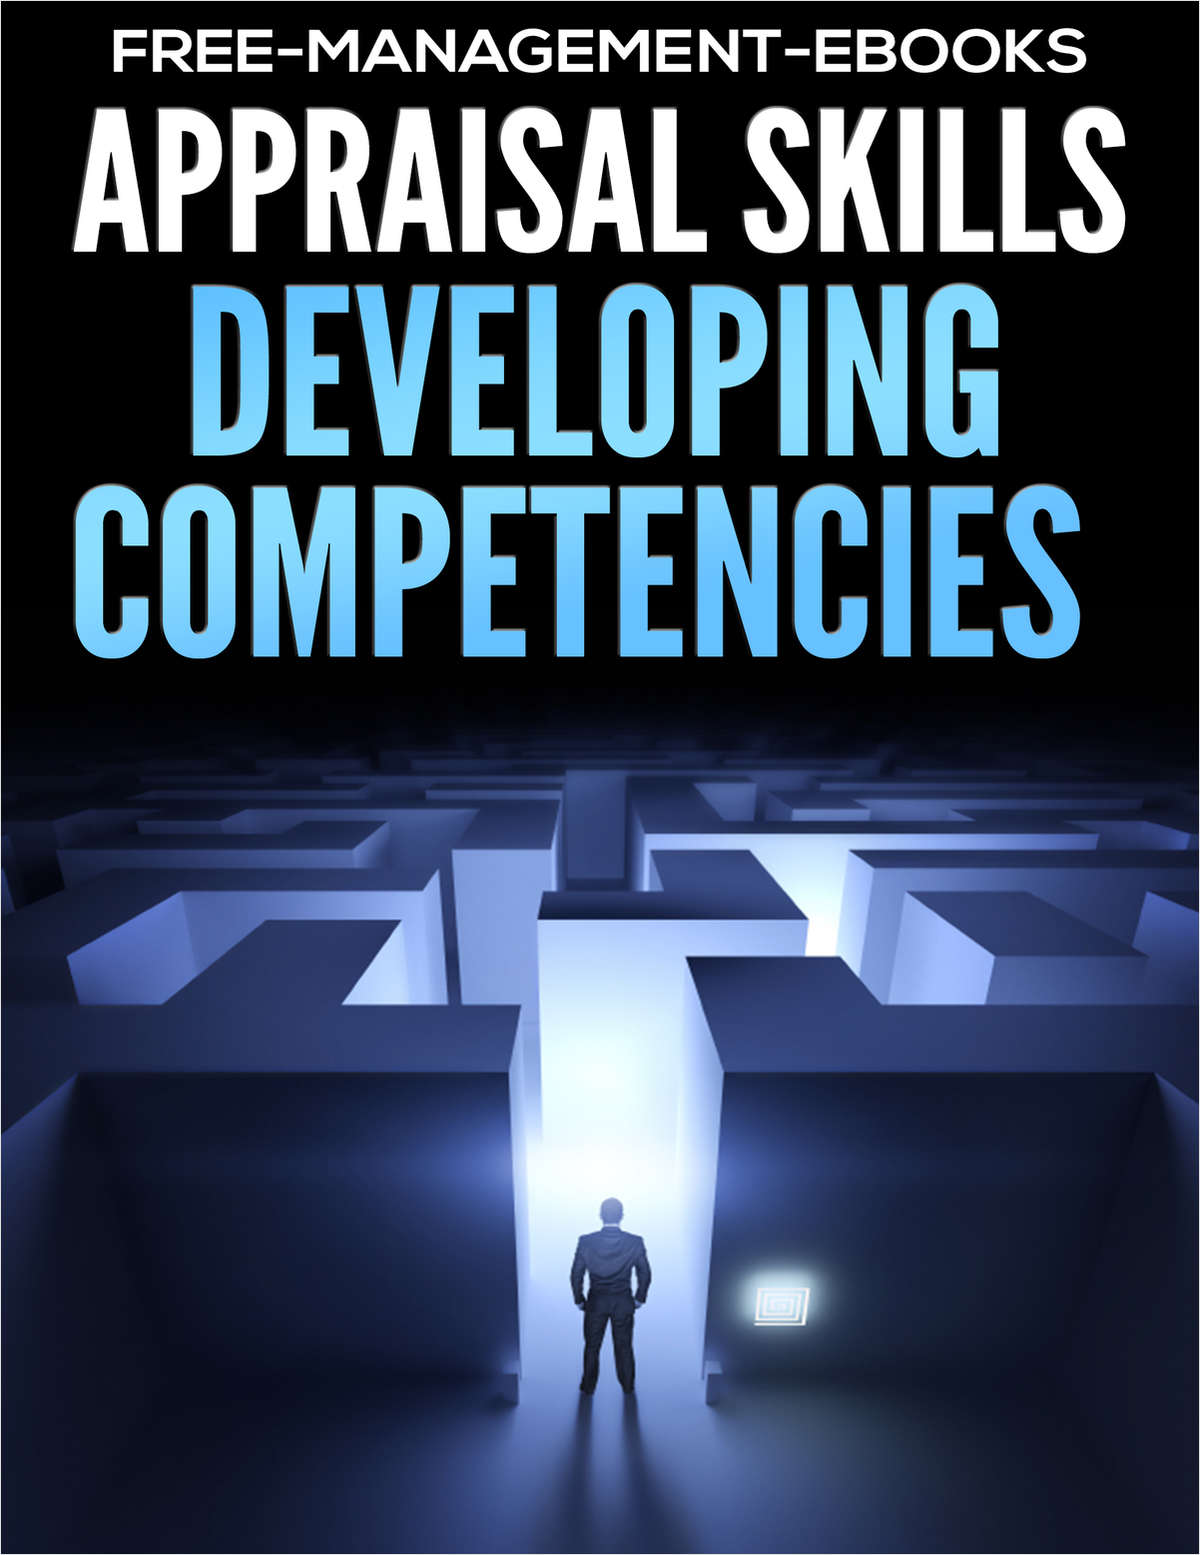 Appraisal Skills - Developing Your Team's Competencies